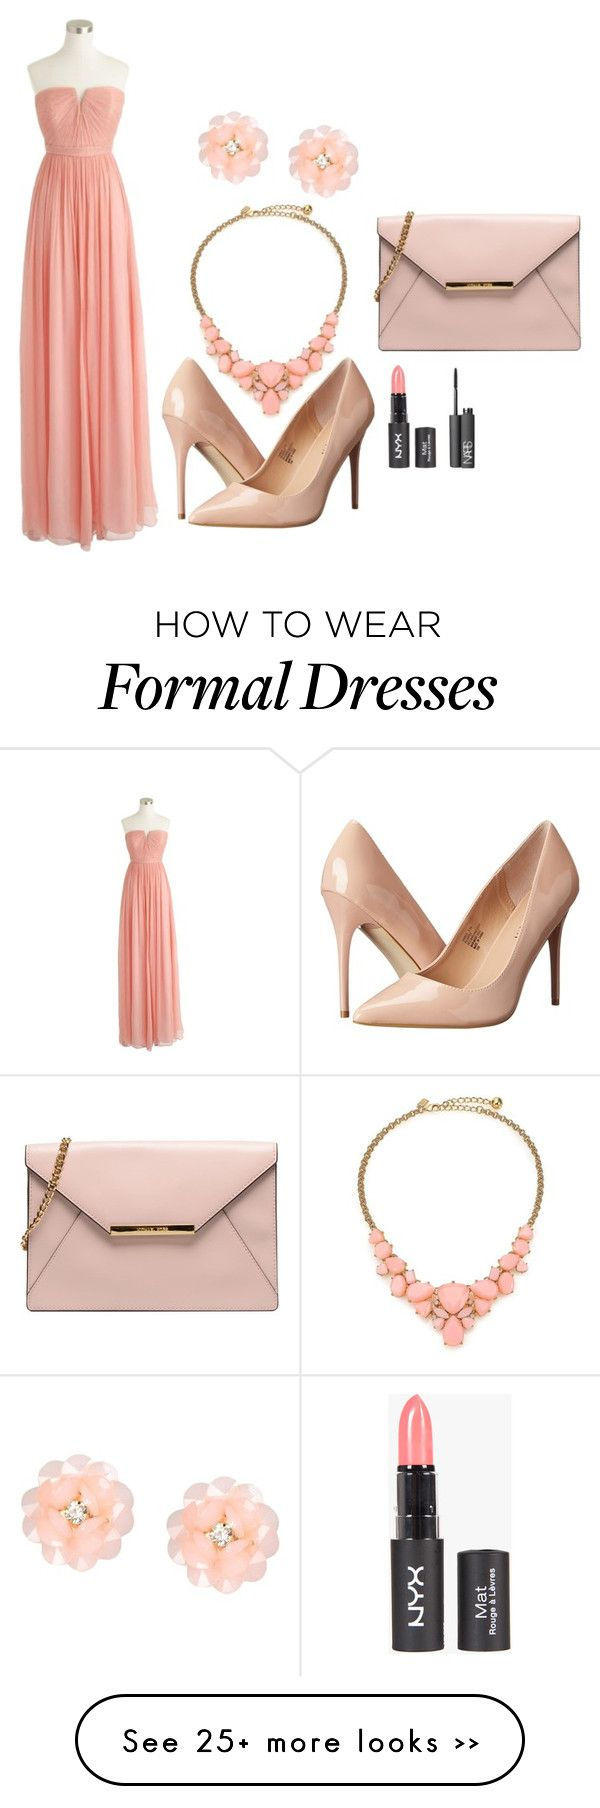 """Spring formal"" by awesomeperson1234 on Polyvore"